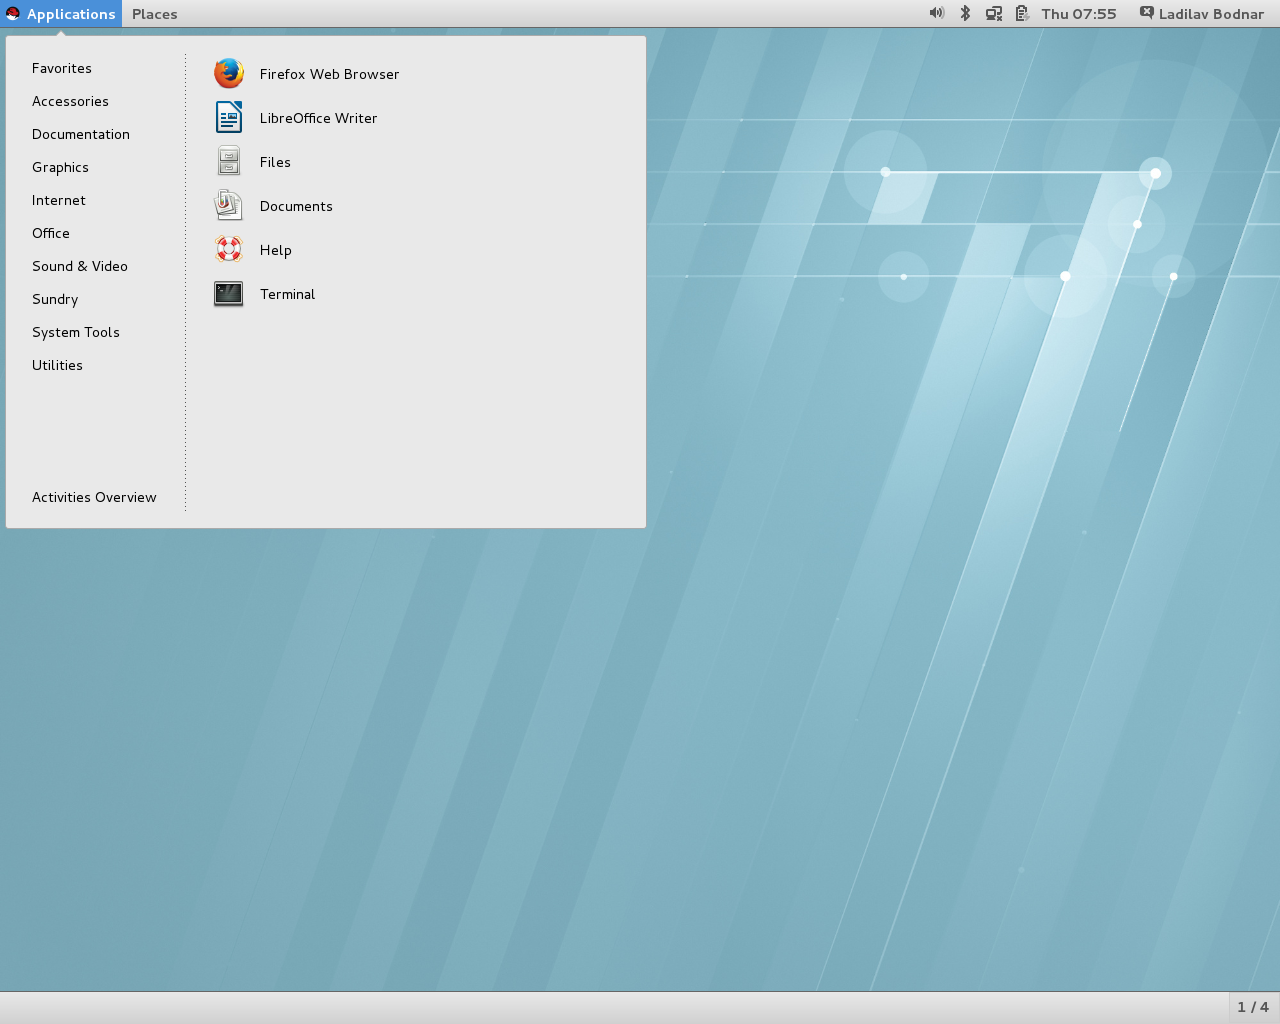 redhat-enterprise-6.8-screen